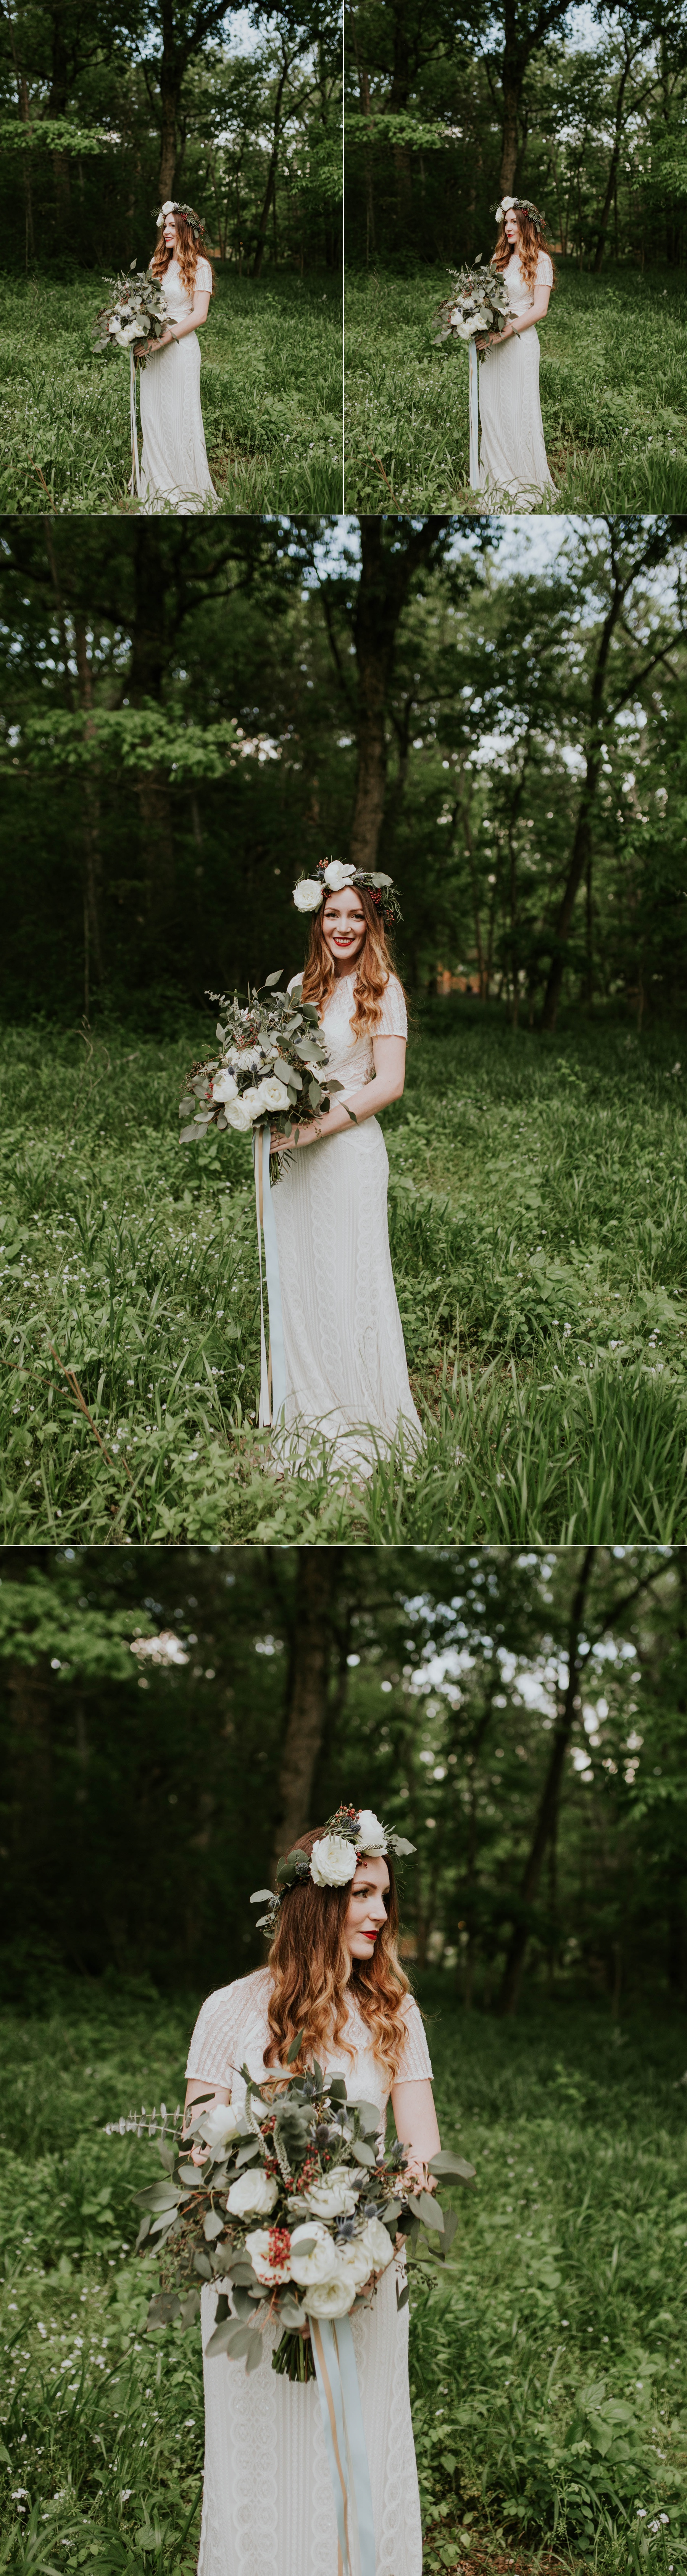 ThroughVictoriasLens_CedarsOfLebanon_Bridals1.jpg